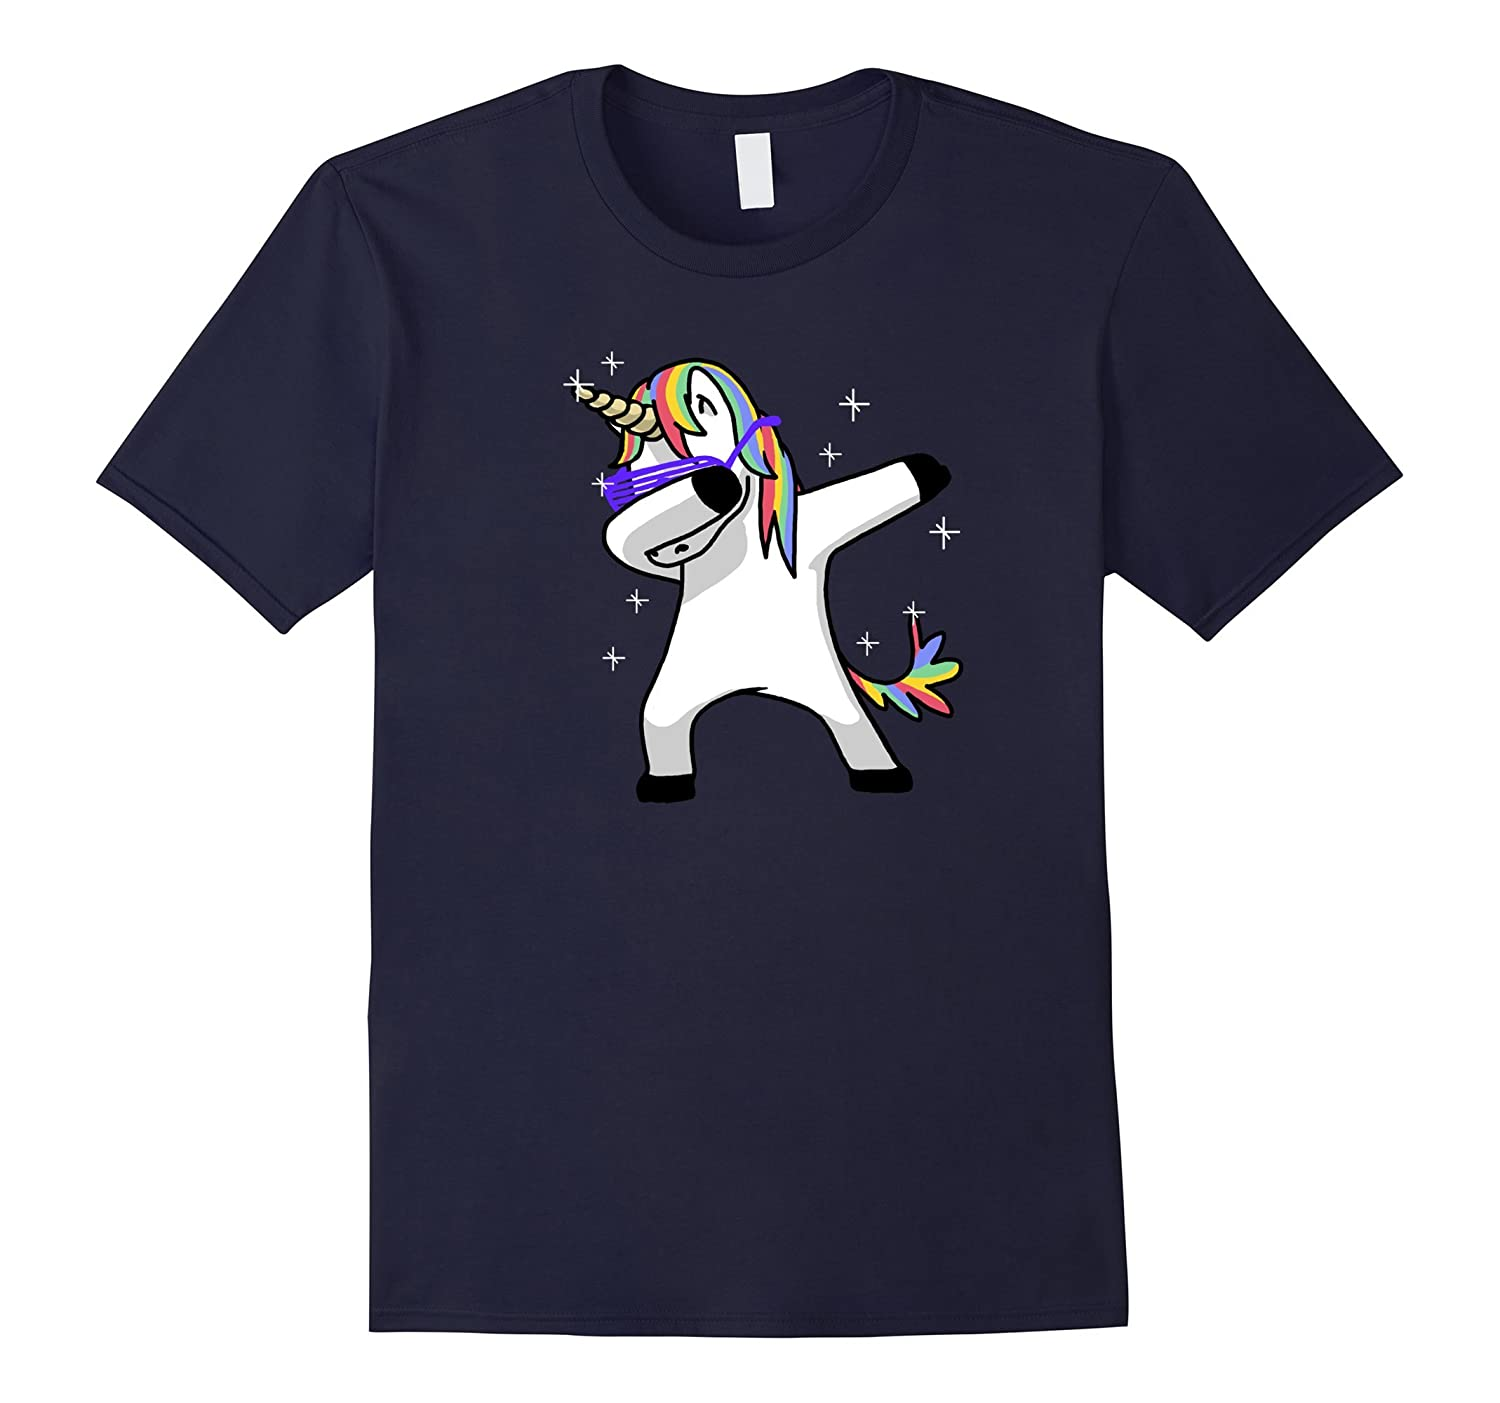 1837f1666 Dabbing Unicorn Shirt Dab Hip Hop Funny Magic-ANZ ⋆ Anztshirt